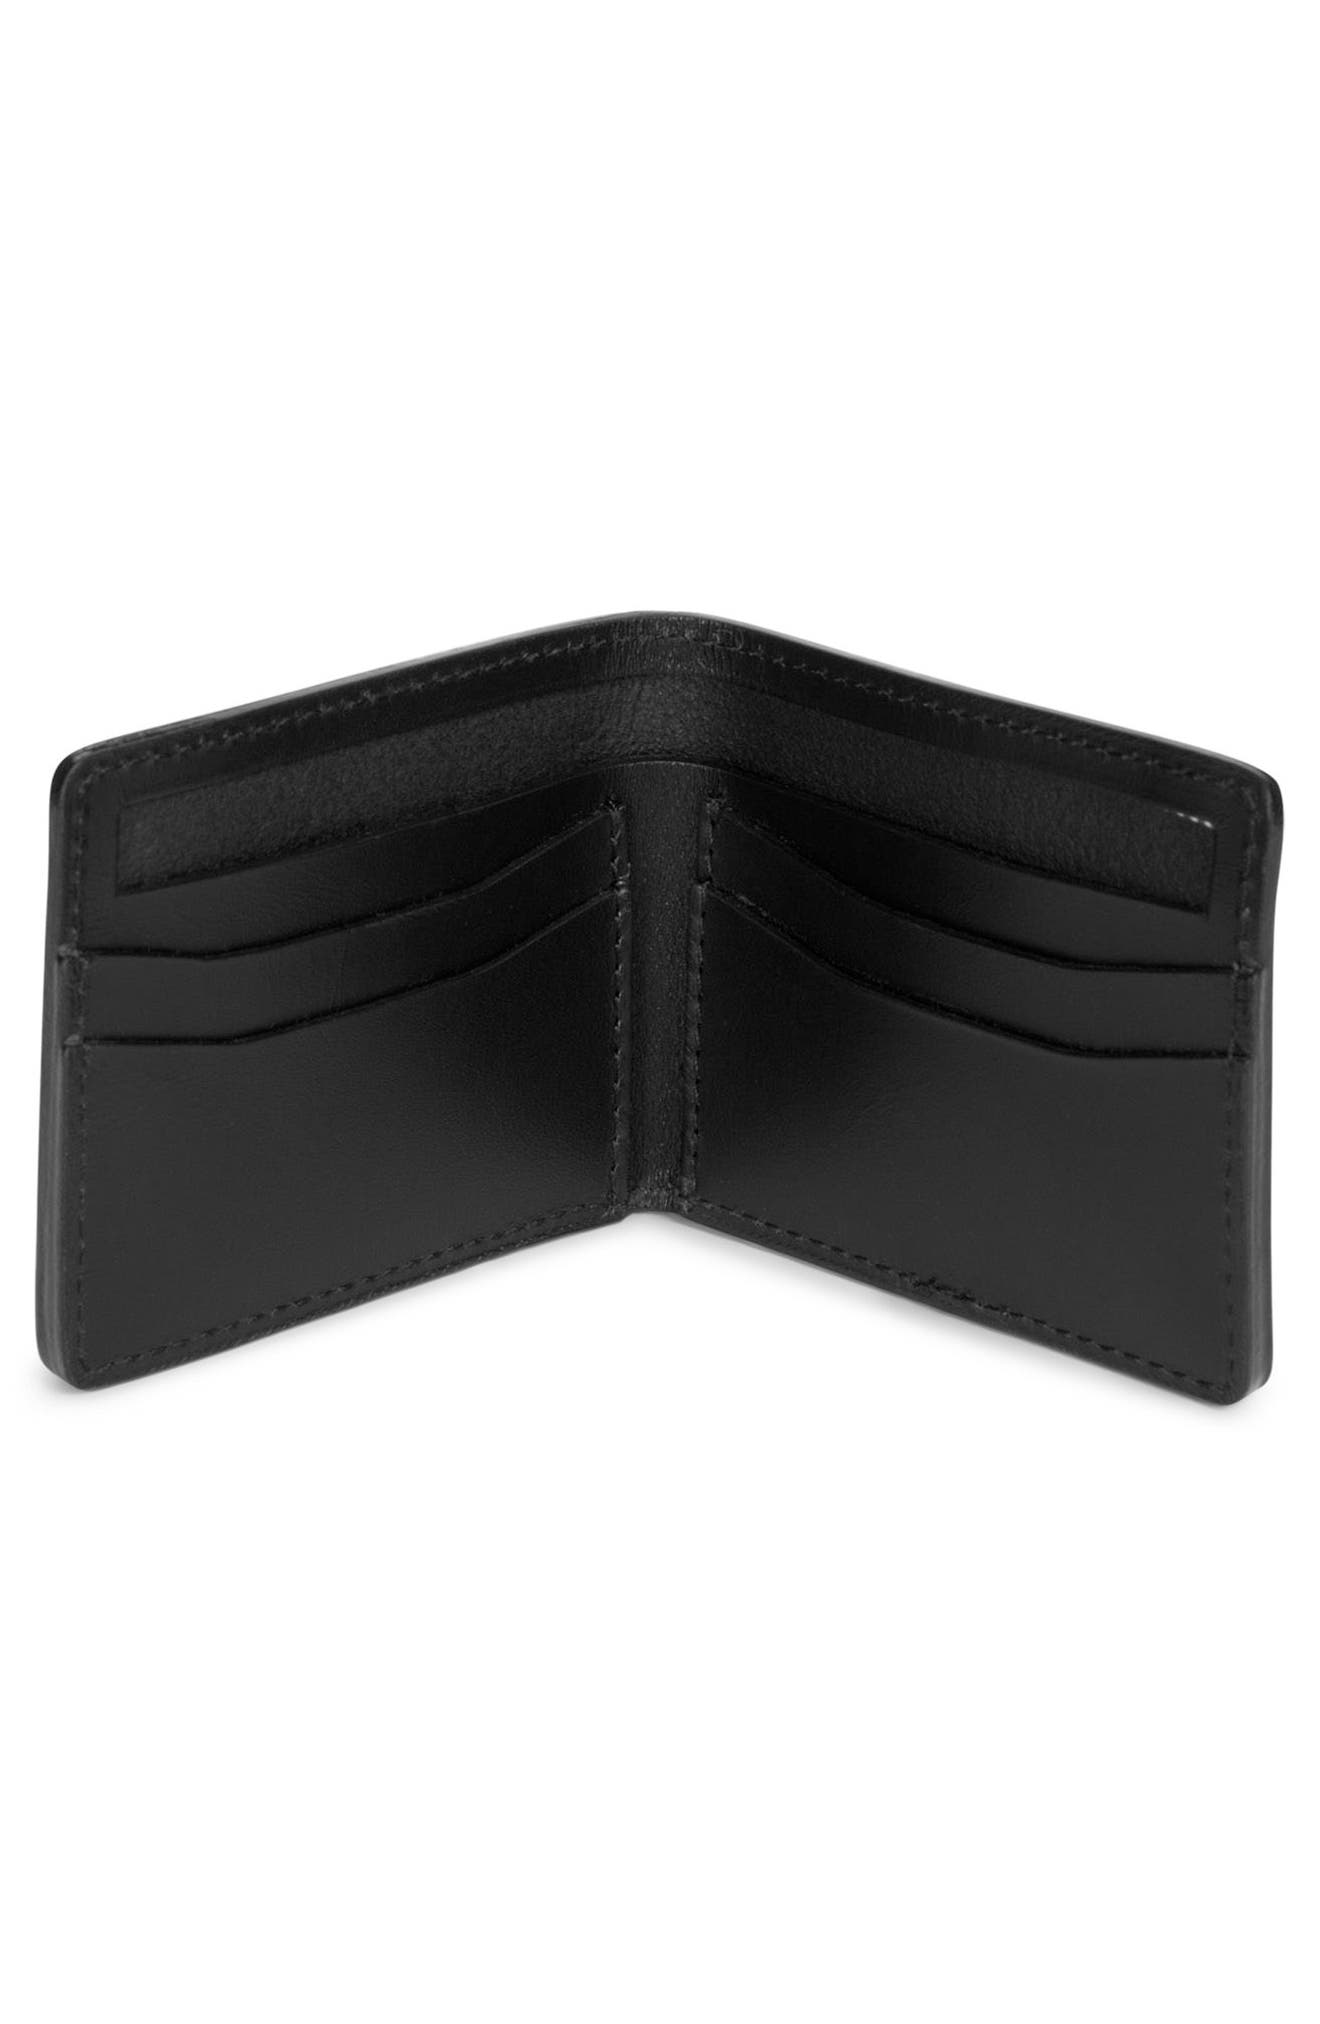 Vincent Saddle Leather Wallet,                             Alternate thumbnail 3, color,                             001